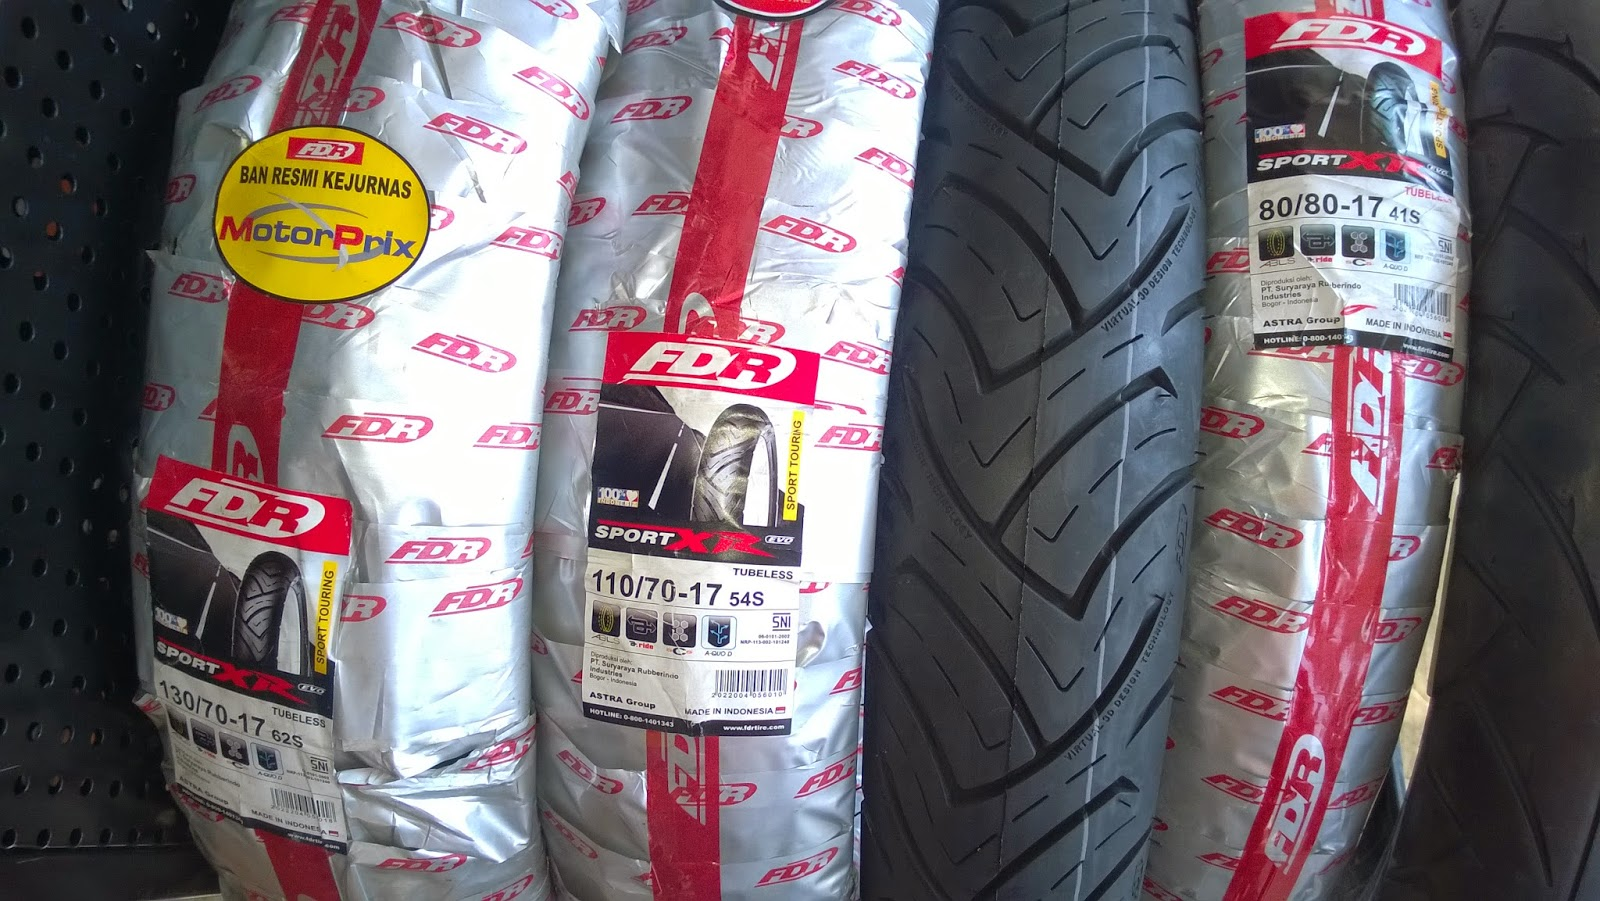 palex motor parts: fdr tire for motorcycle